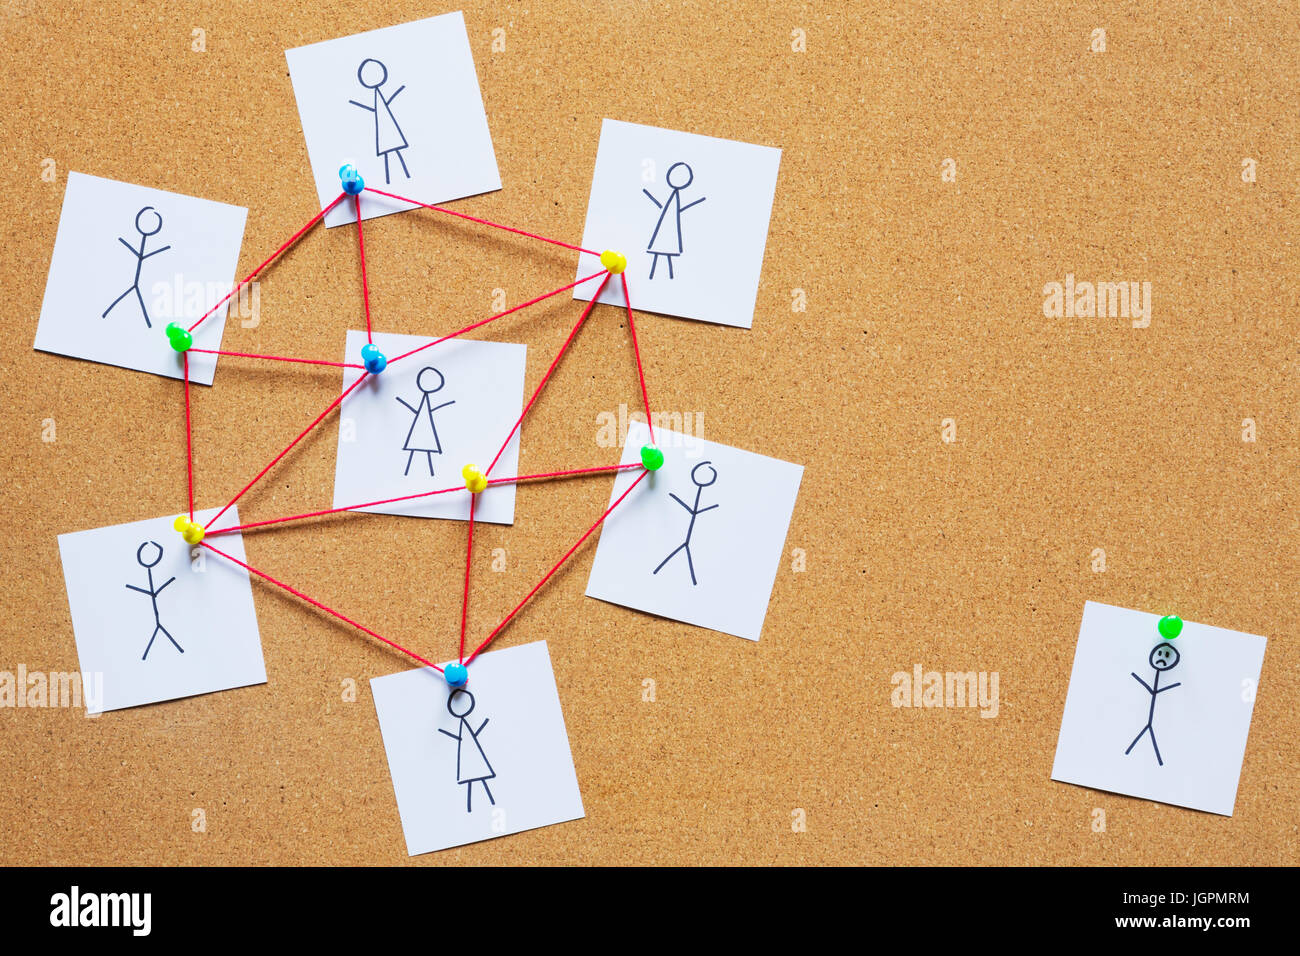 Visualization of a single person not fitting into the group on a cork bulletin board. - Stock Image